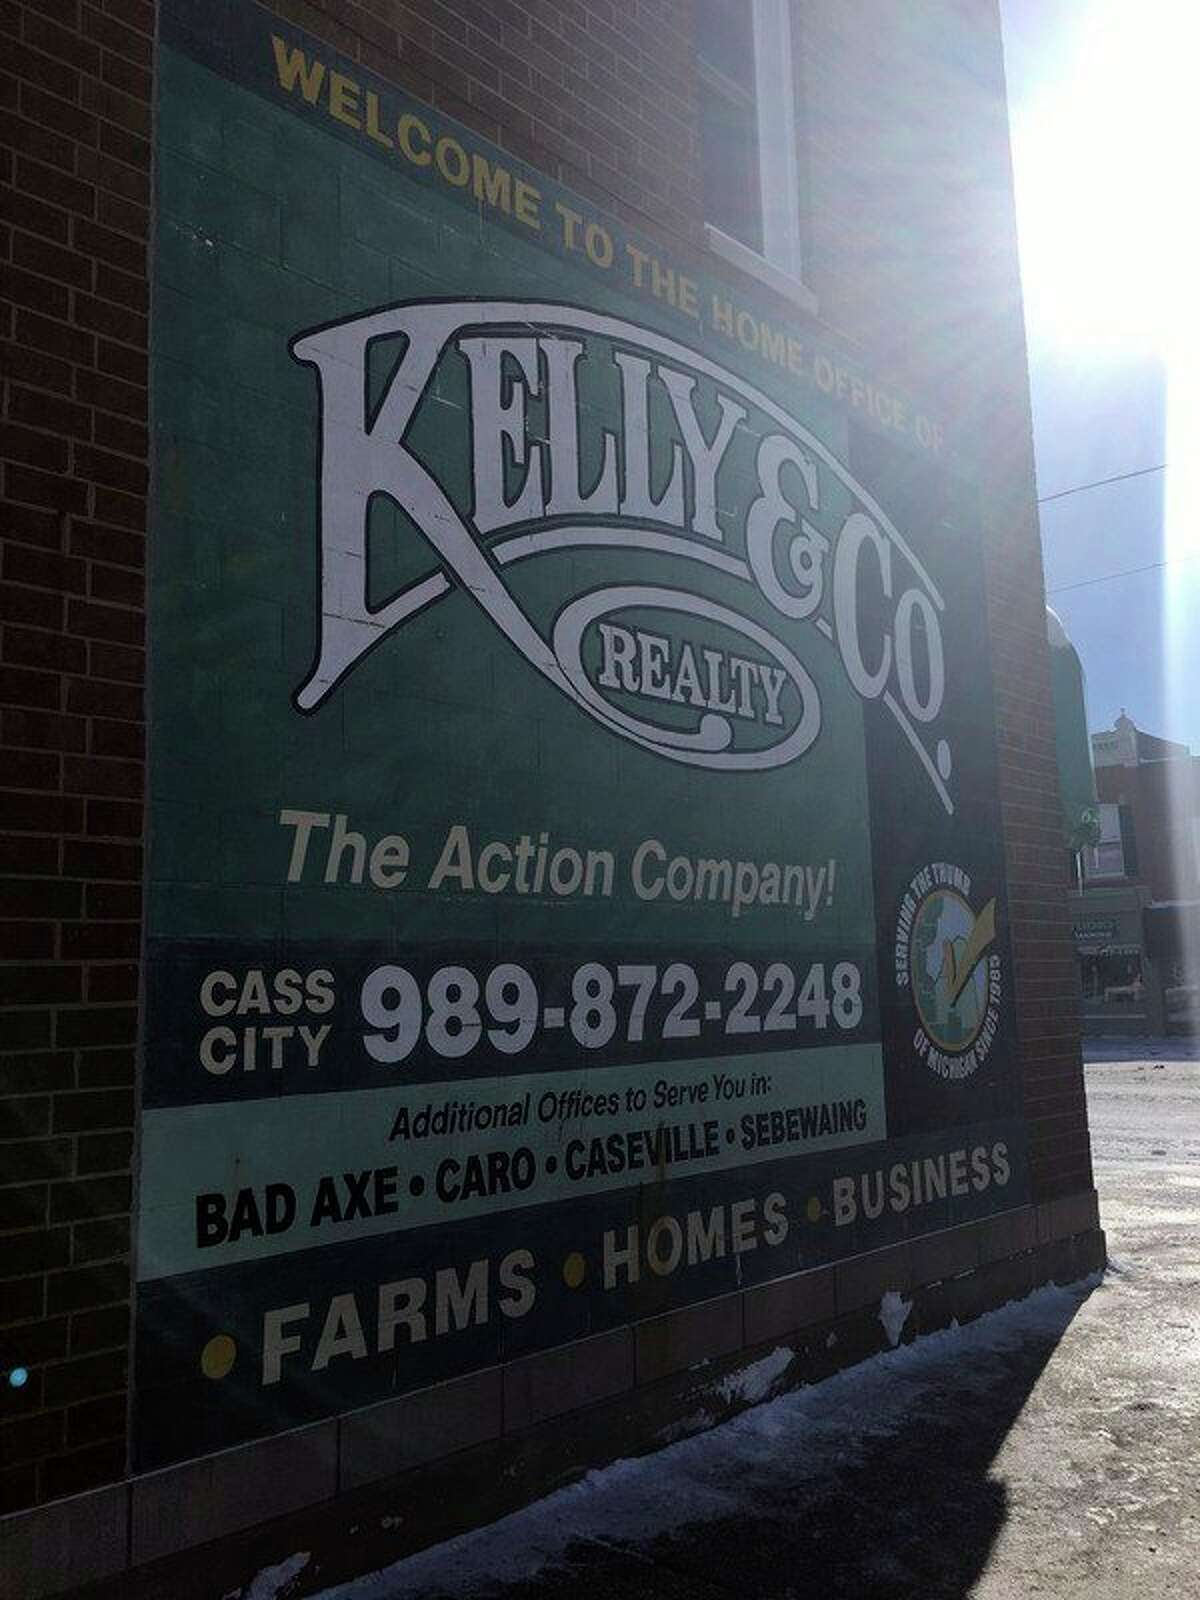 Based in Cass City, Kelly & Co. Realty has been serving the Upper Thumb since 1985. (Brenda Battel/Huron Daily Tribune)